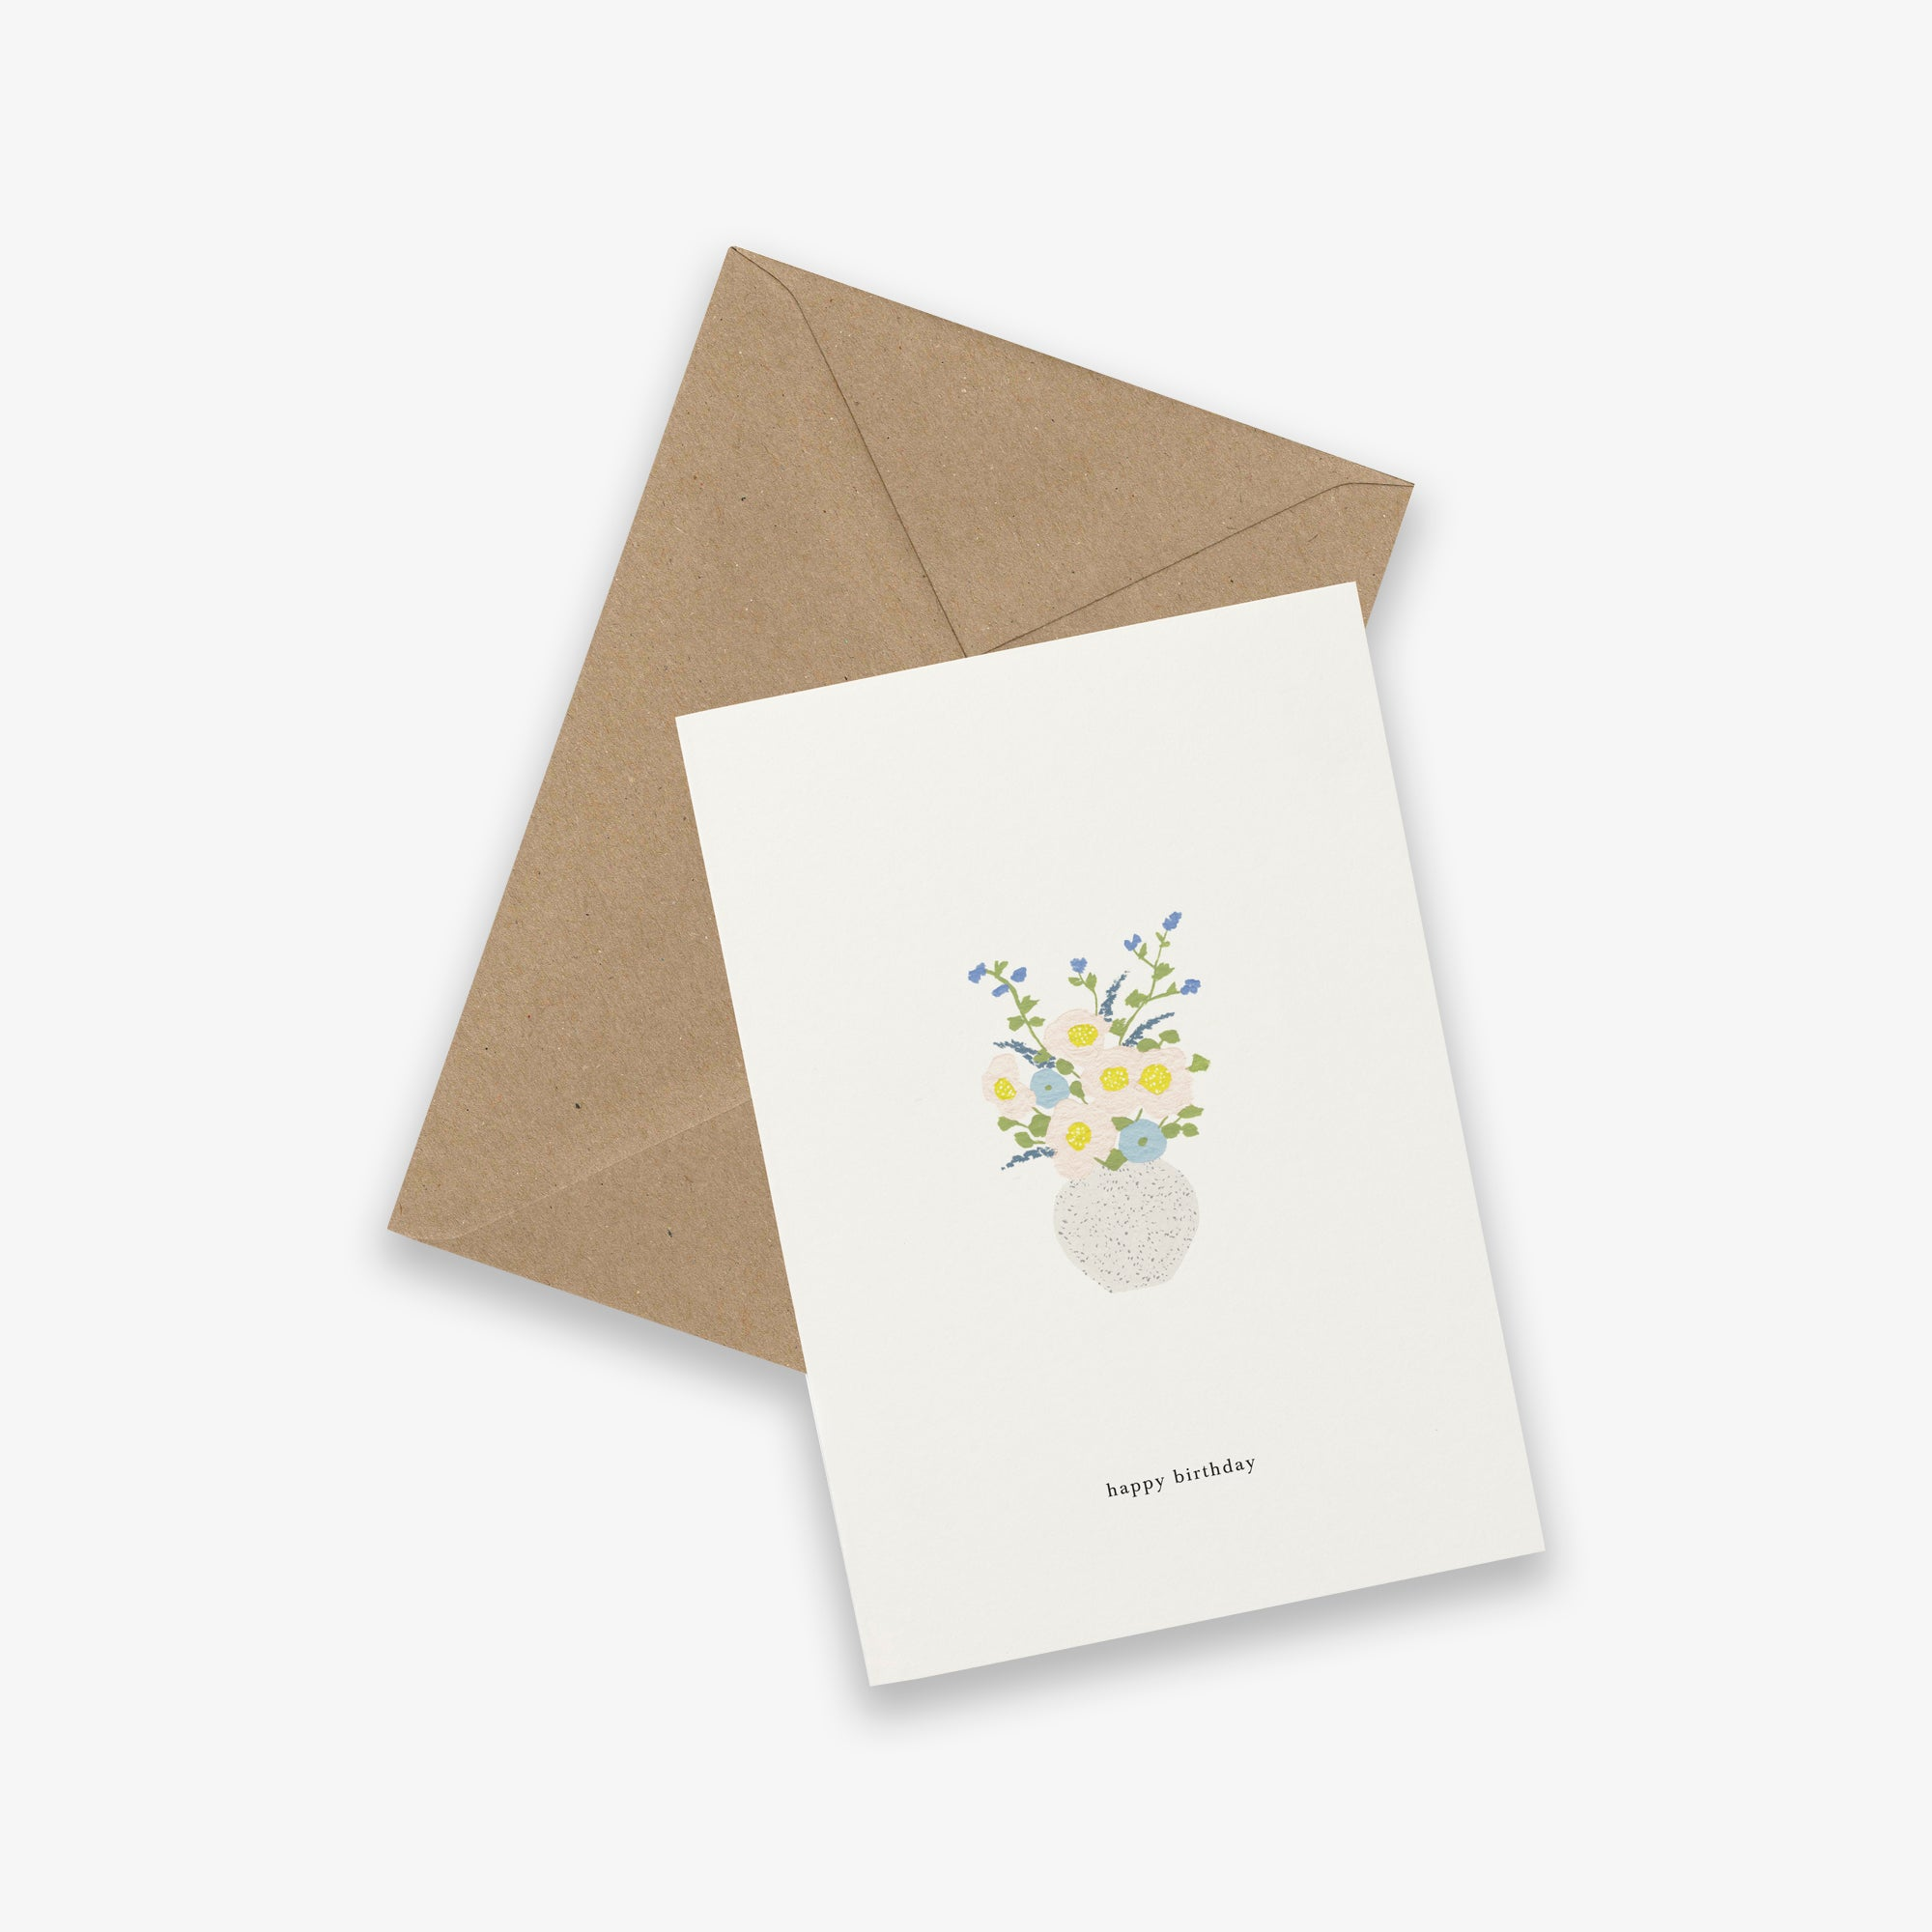 GREETING CARD // BIRTHDAY FLOWERS